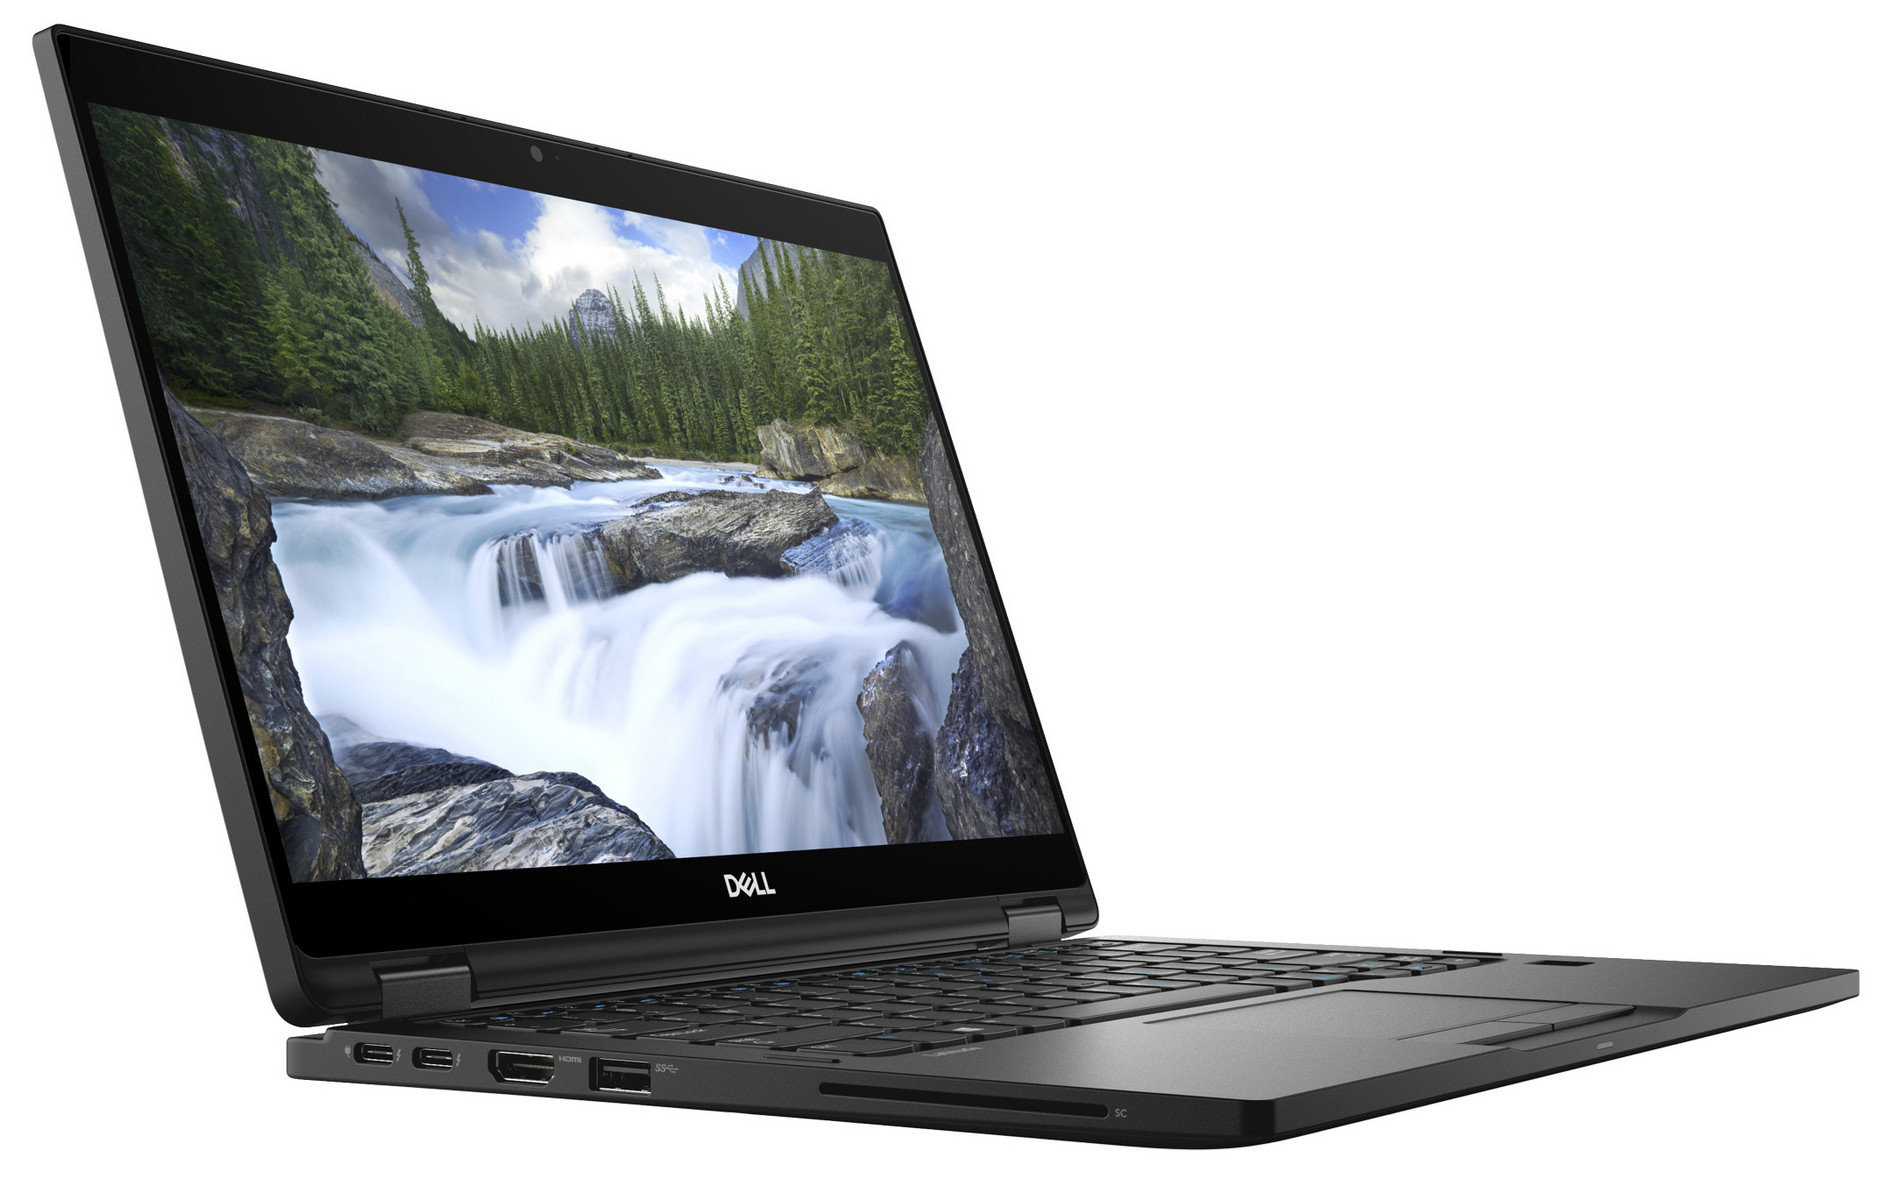 Ultrabook Dell Latitude 7389 13.3 Full HD Touch Intel Core i7-7600U RAM 8GB SSD 256GB Windows 10 Pro